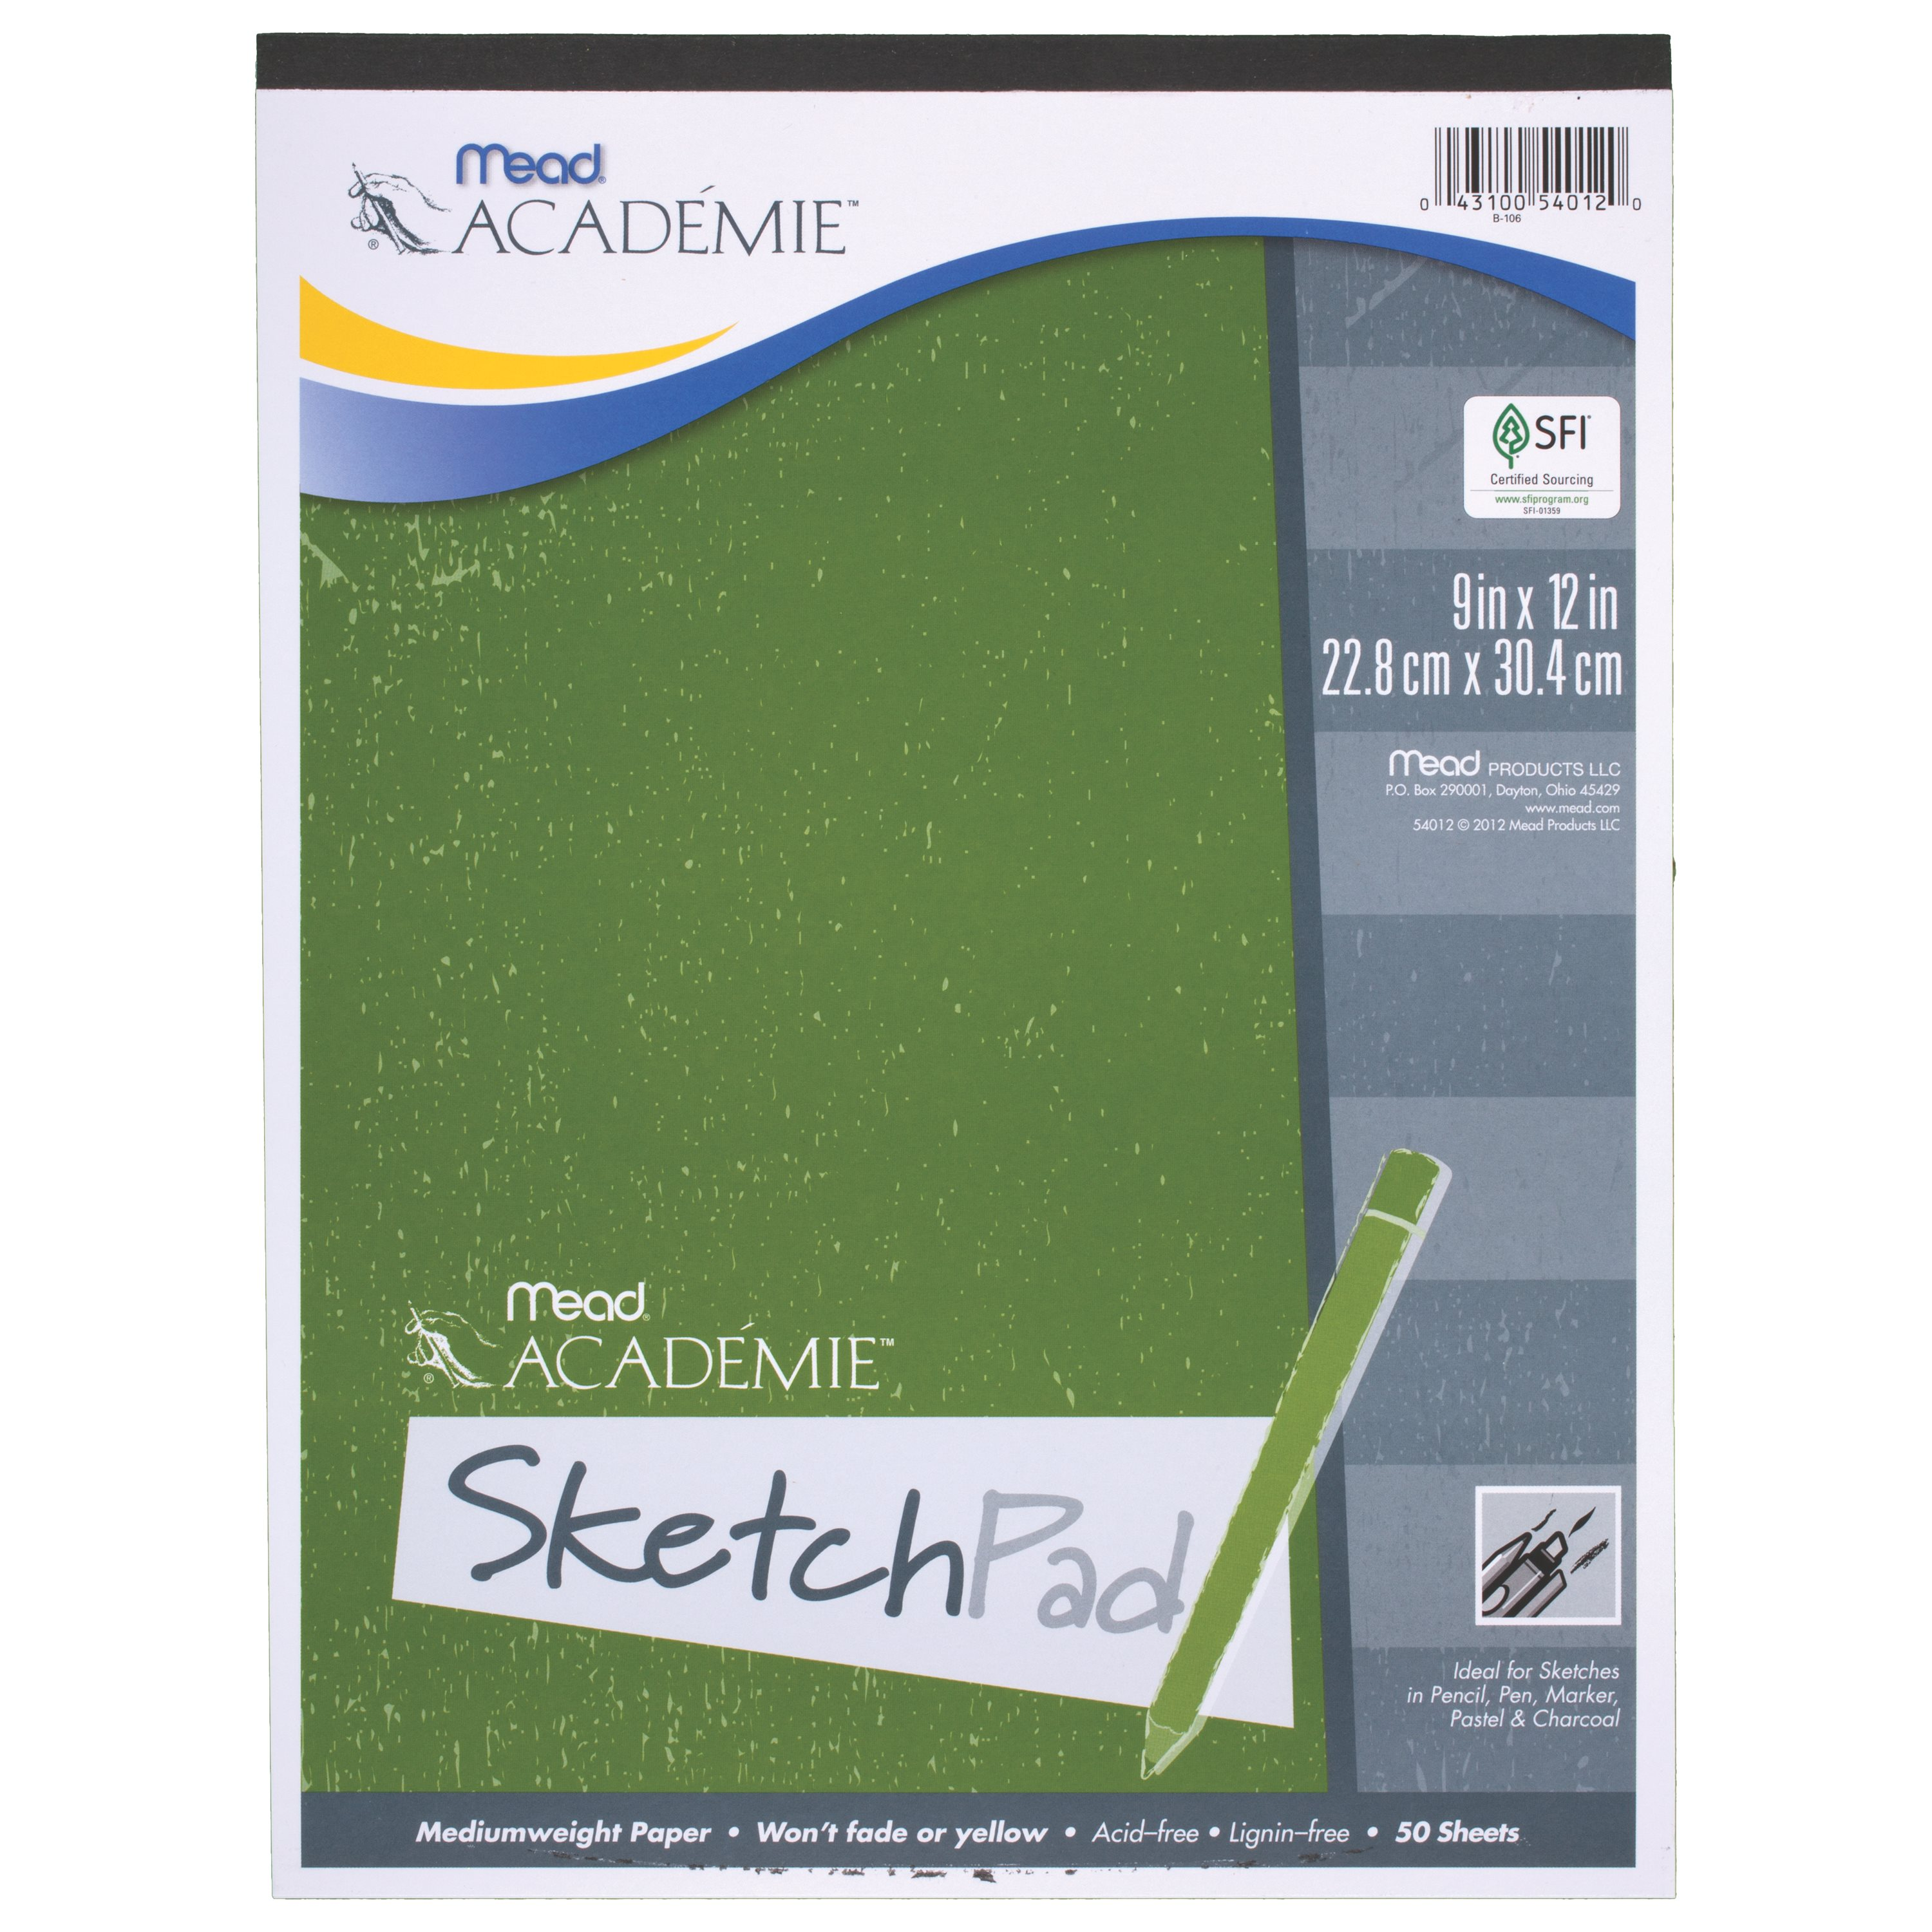 Mead Academie Sketch Pad, White